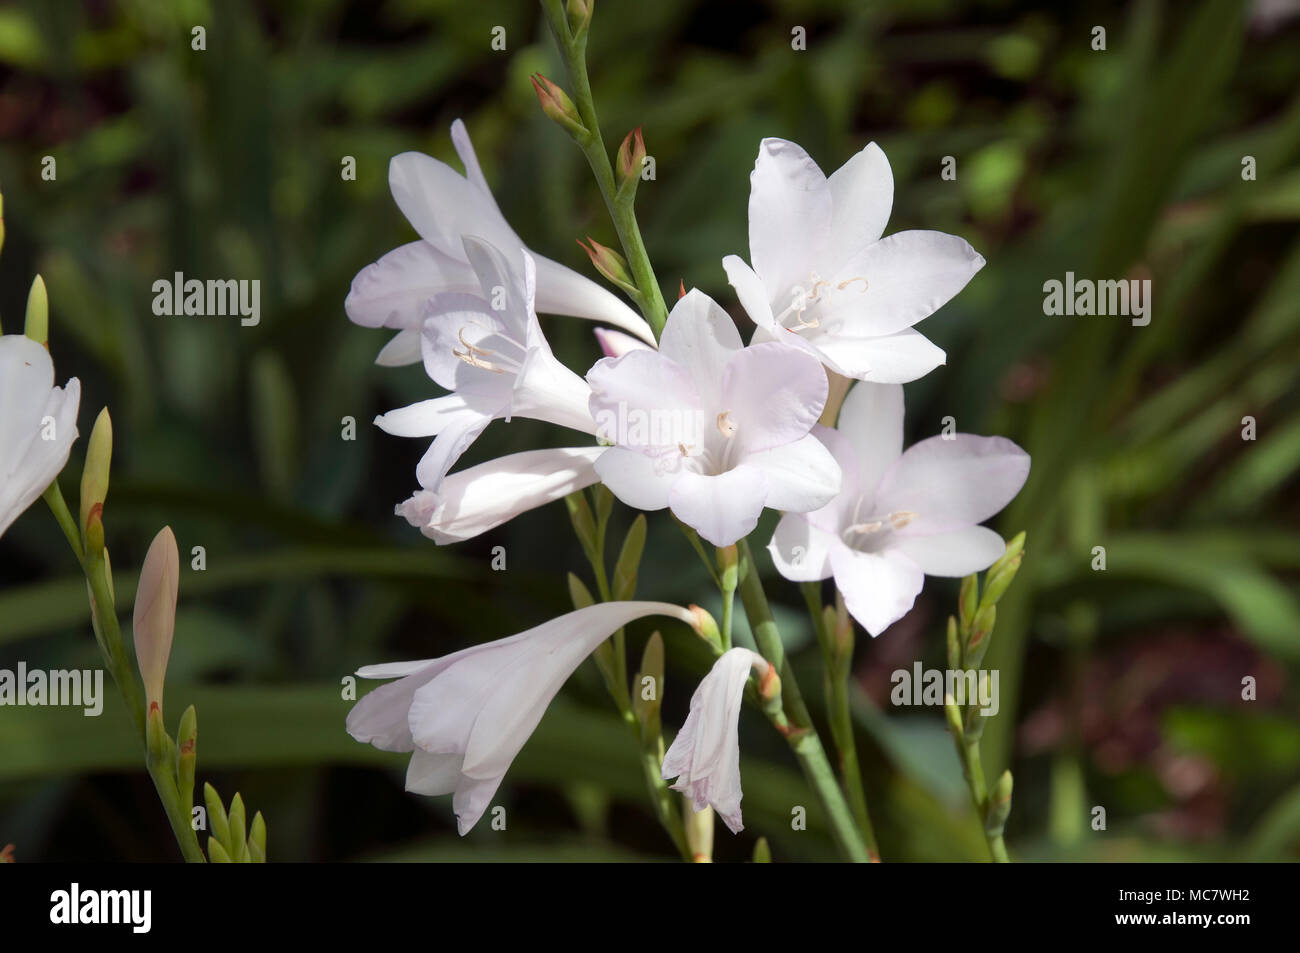 10 Bugle Lily High Resolution Stock Photography and Images   Alamy